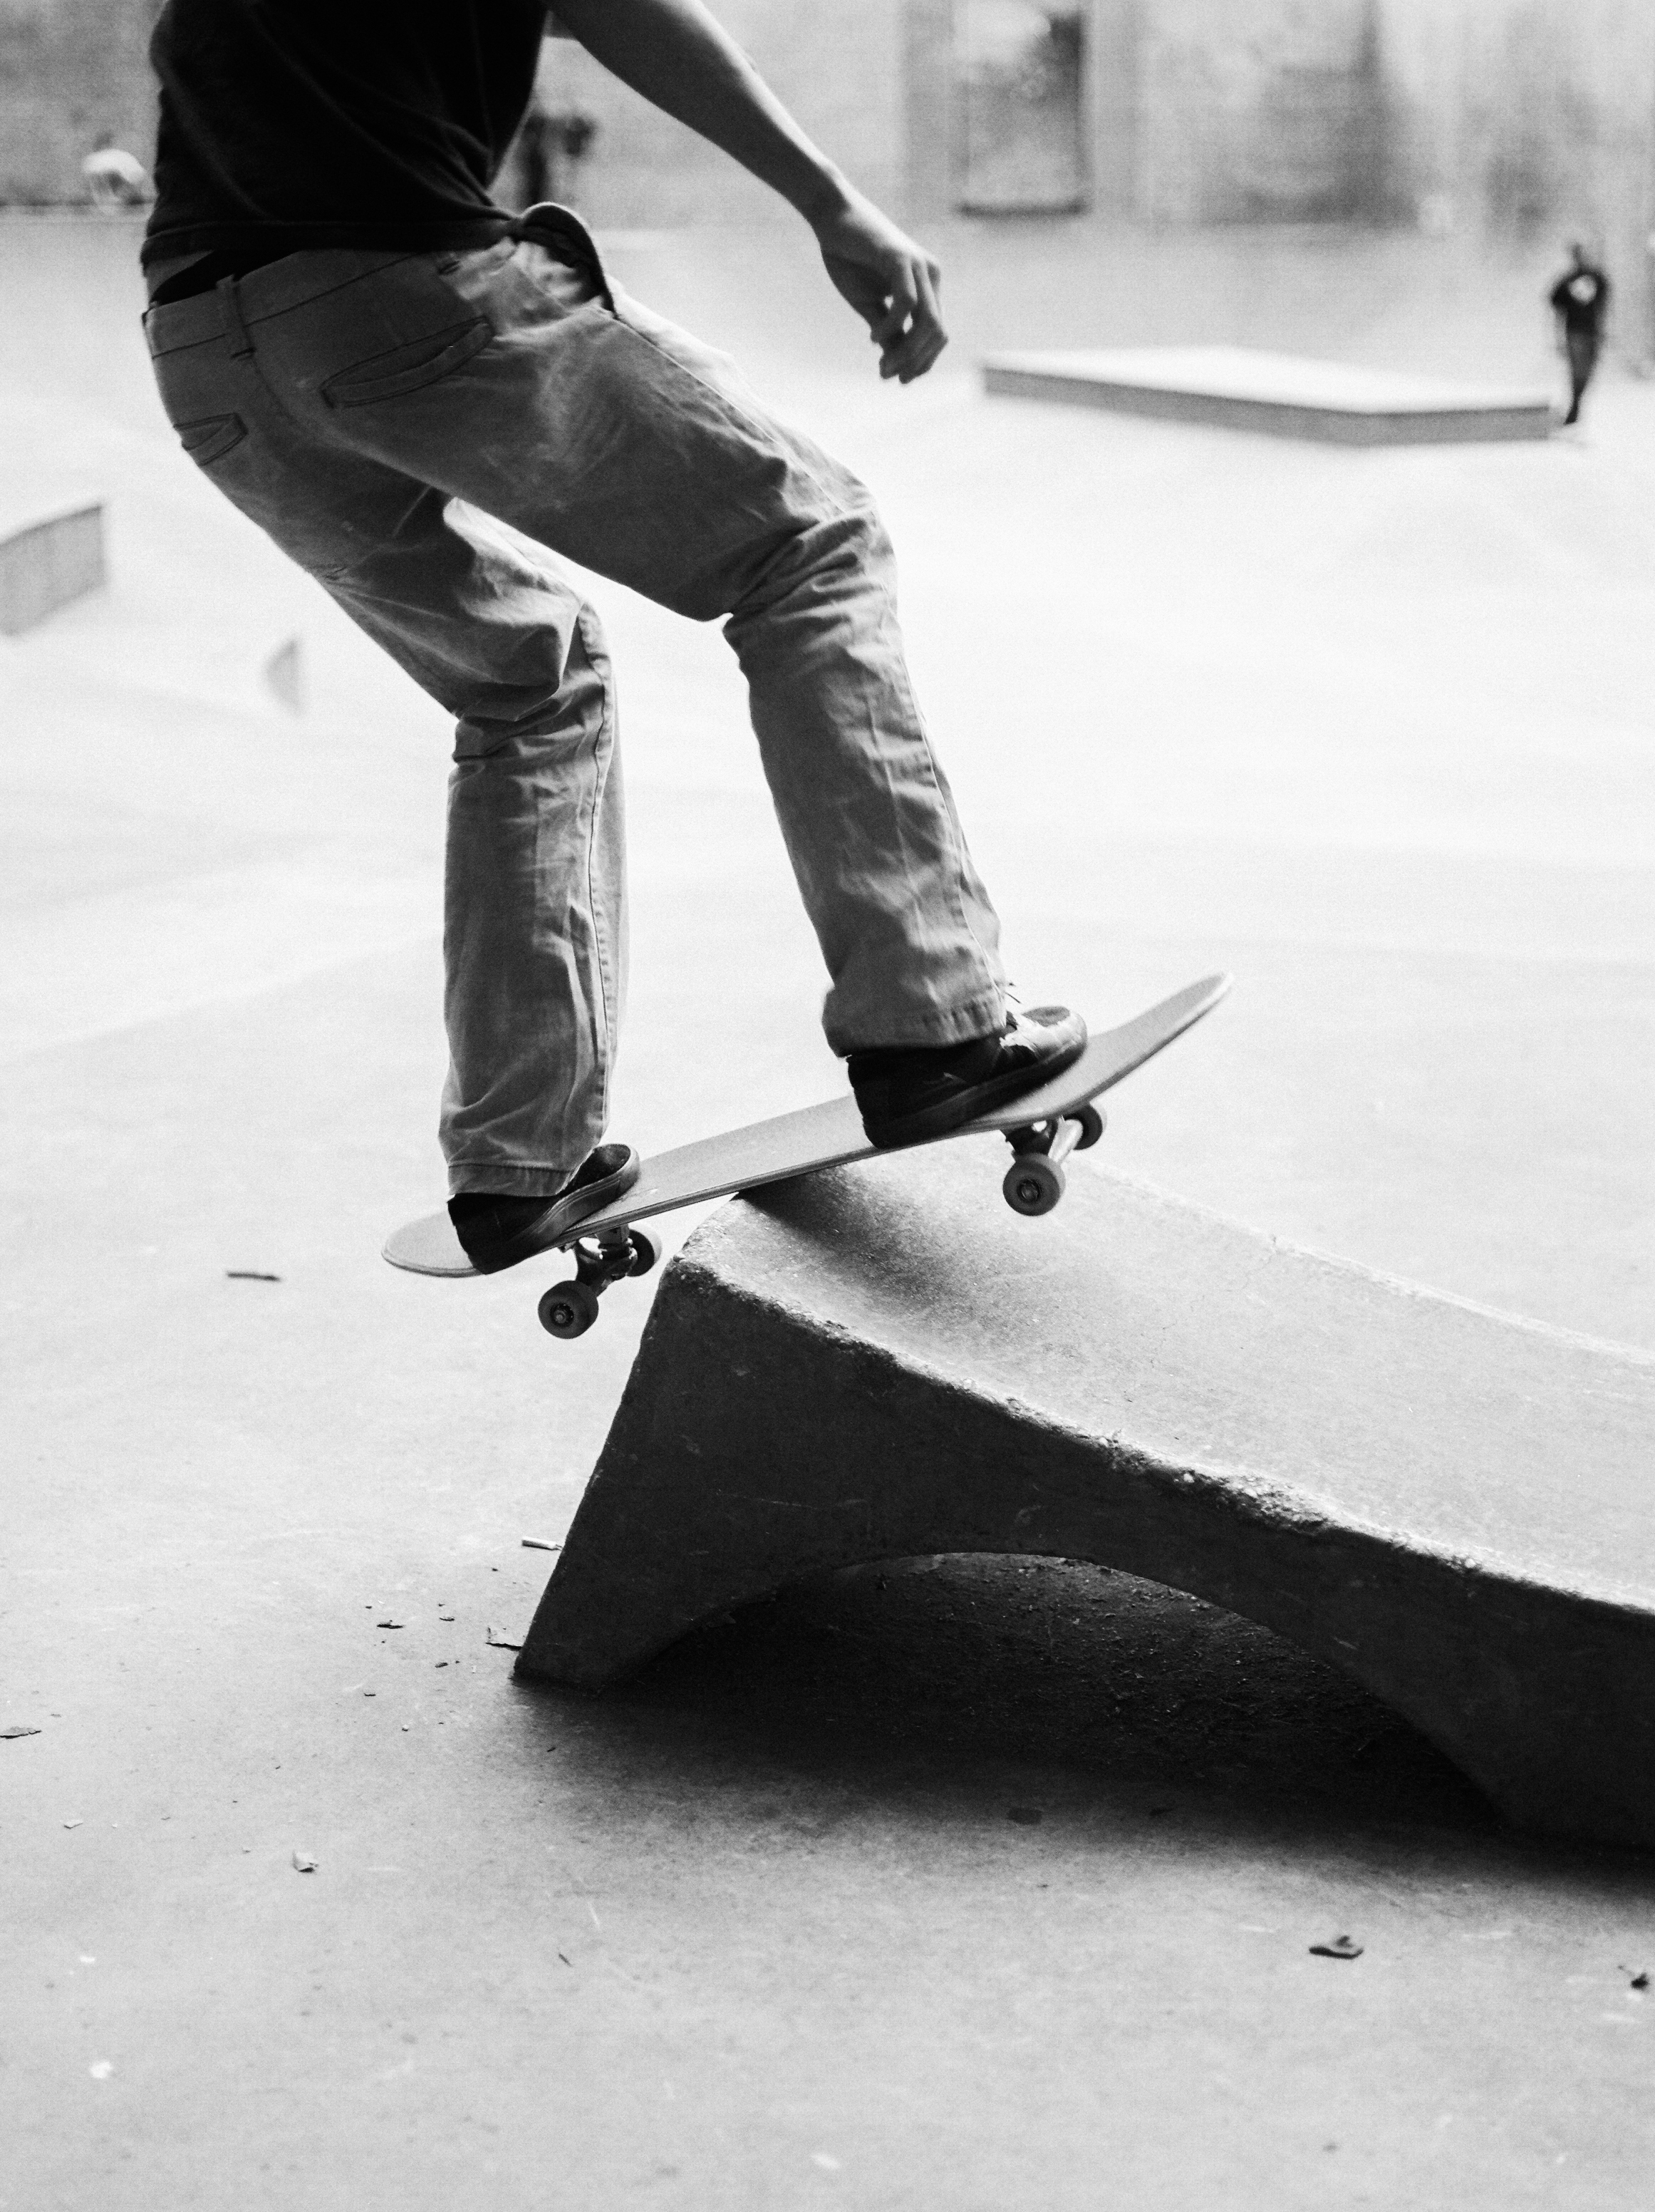 Photograph Your Life #skate #bwfilm#seattle